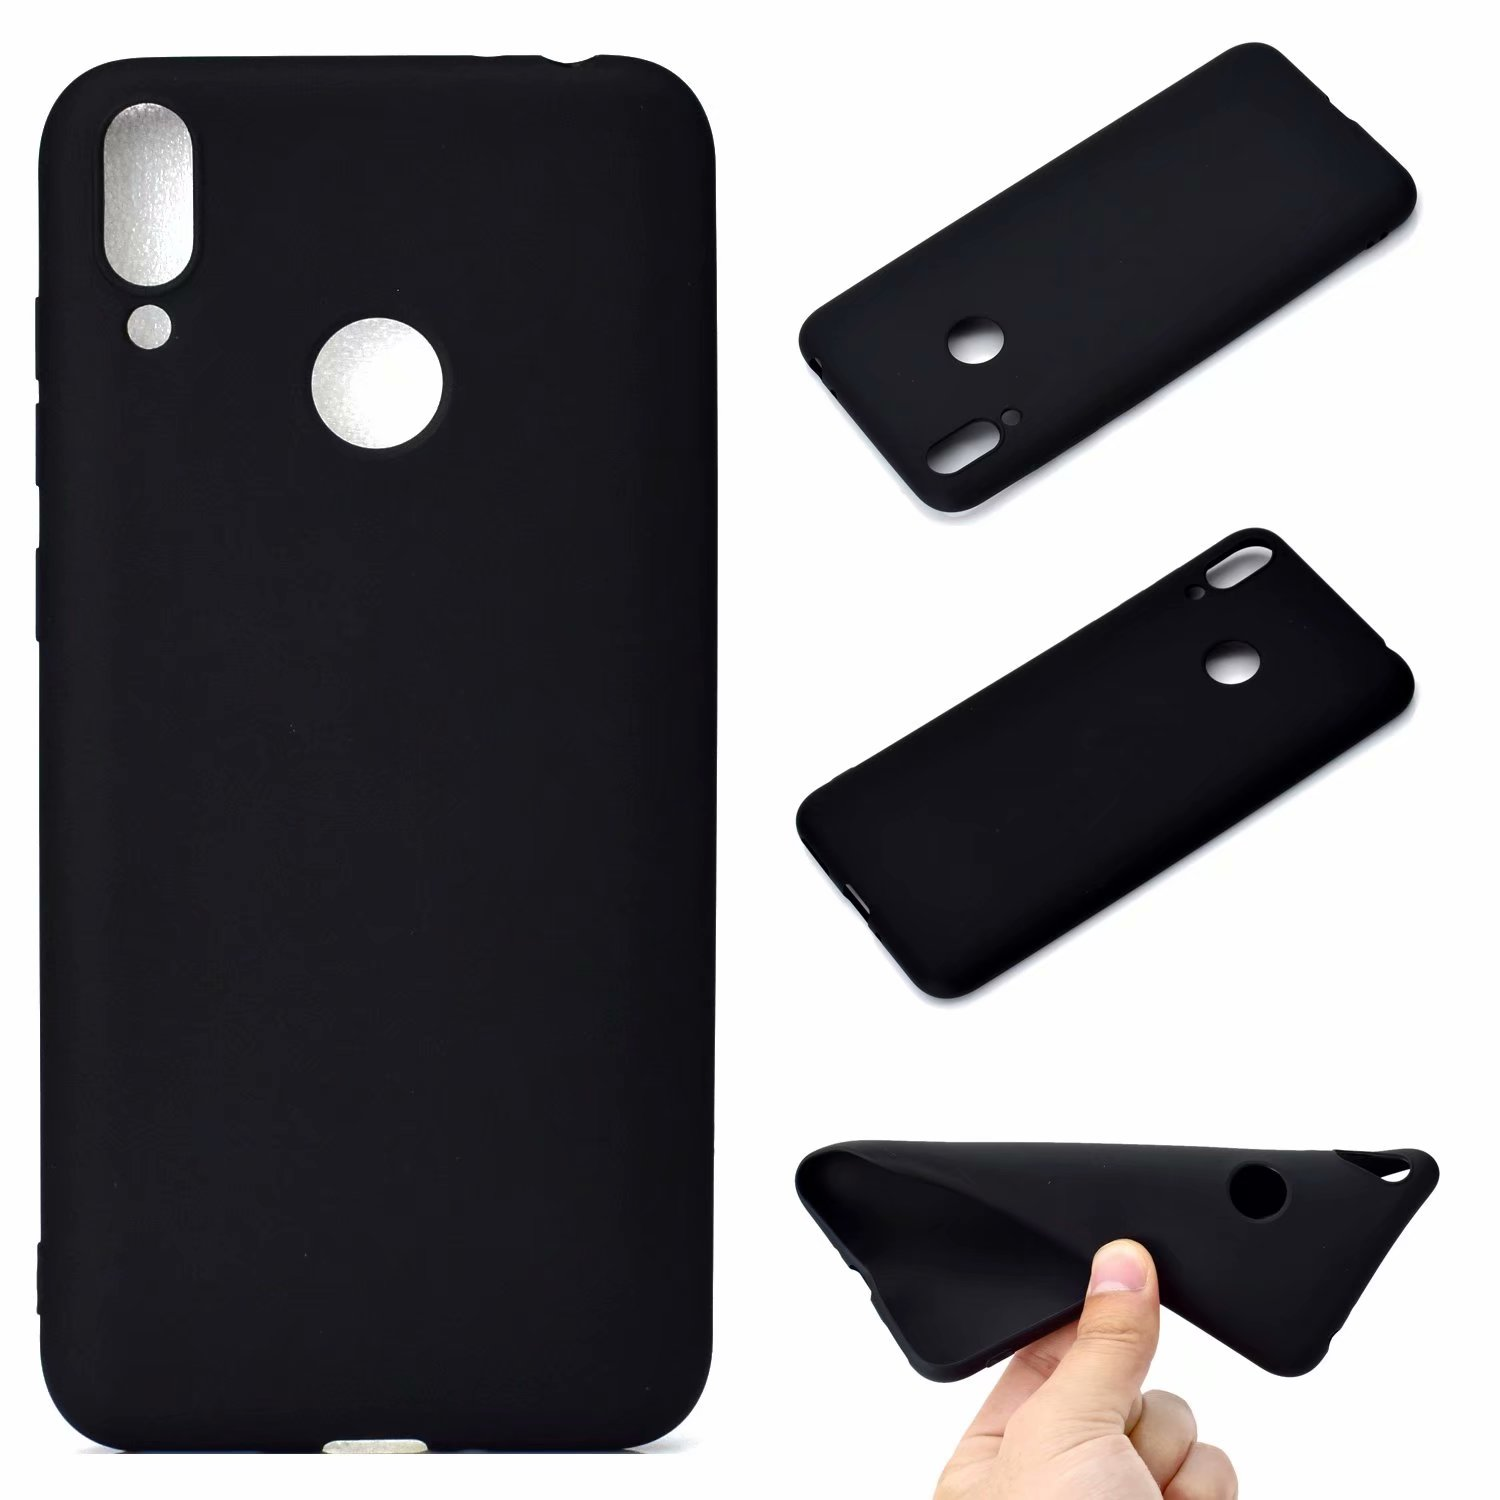 For HUAWEI Honor 8C Lovely Candy Color Matte TPU Anti-scratch Non-slip Protective Cover Back Case black